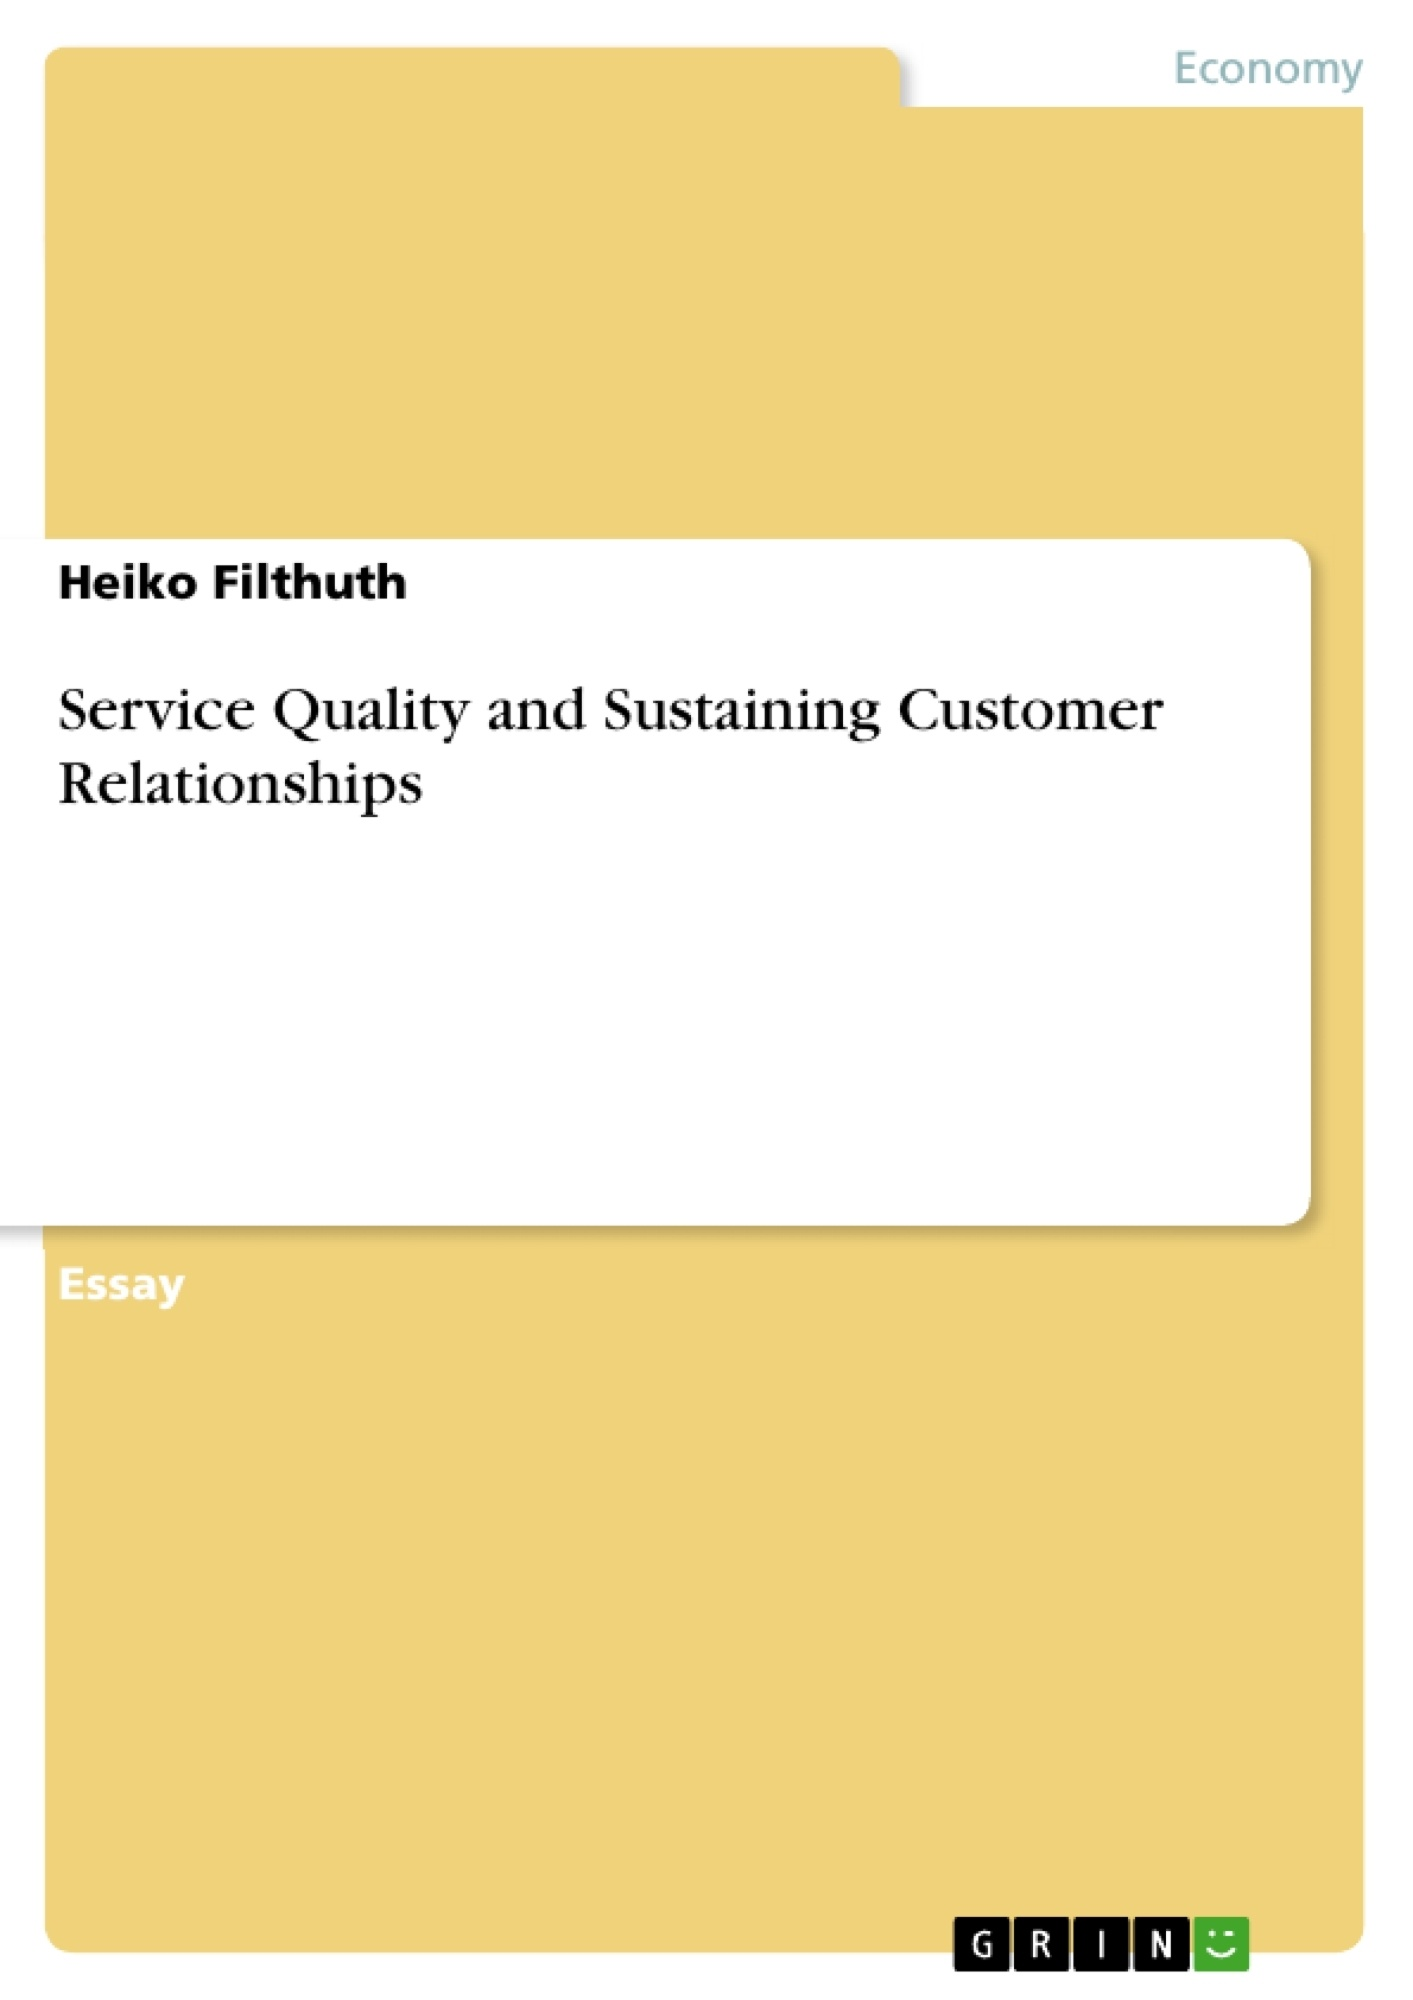 Title: Service Quality and Sustaining Customer Relationships